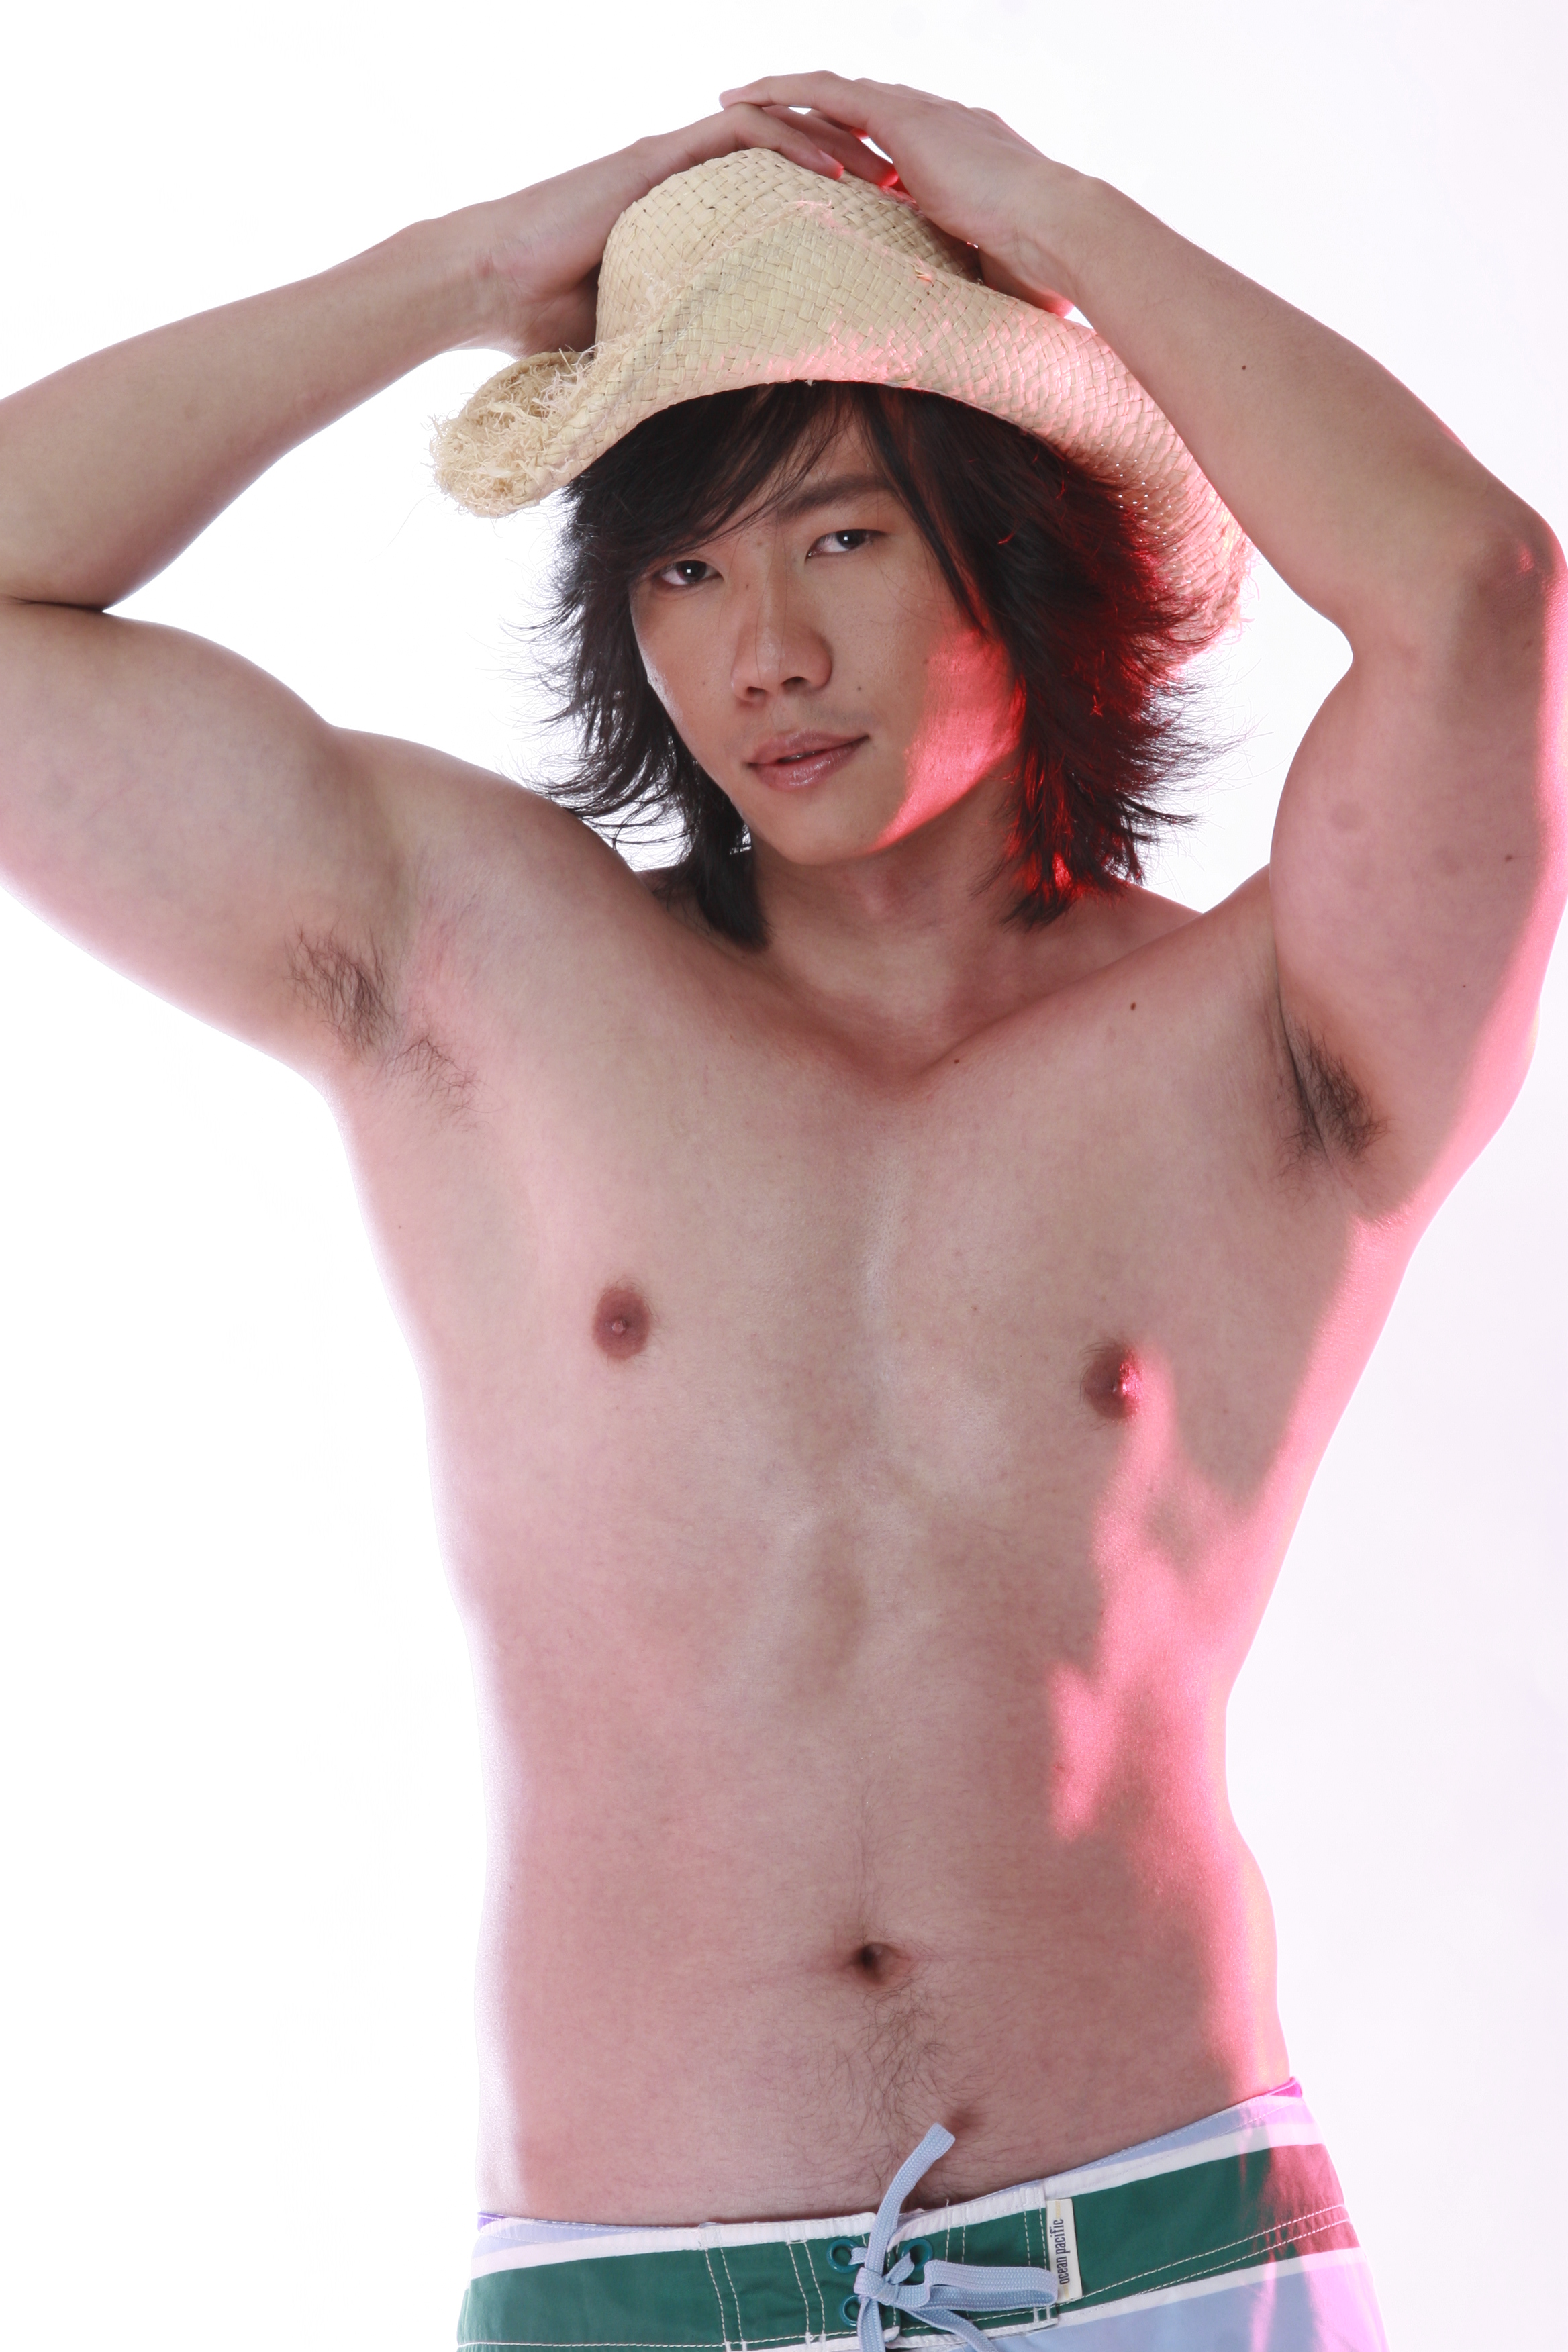 Ratchakit R Asian Male Model